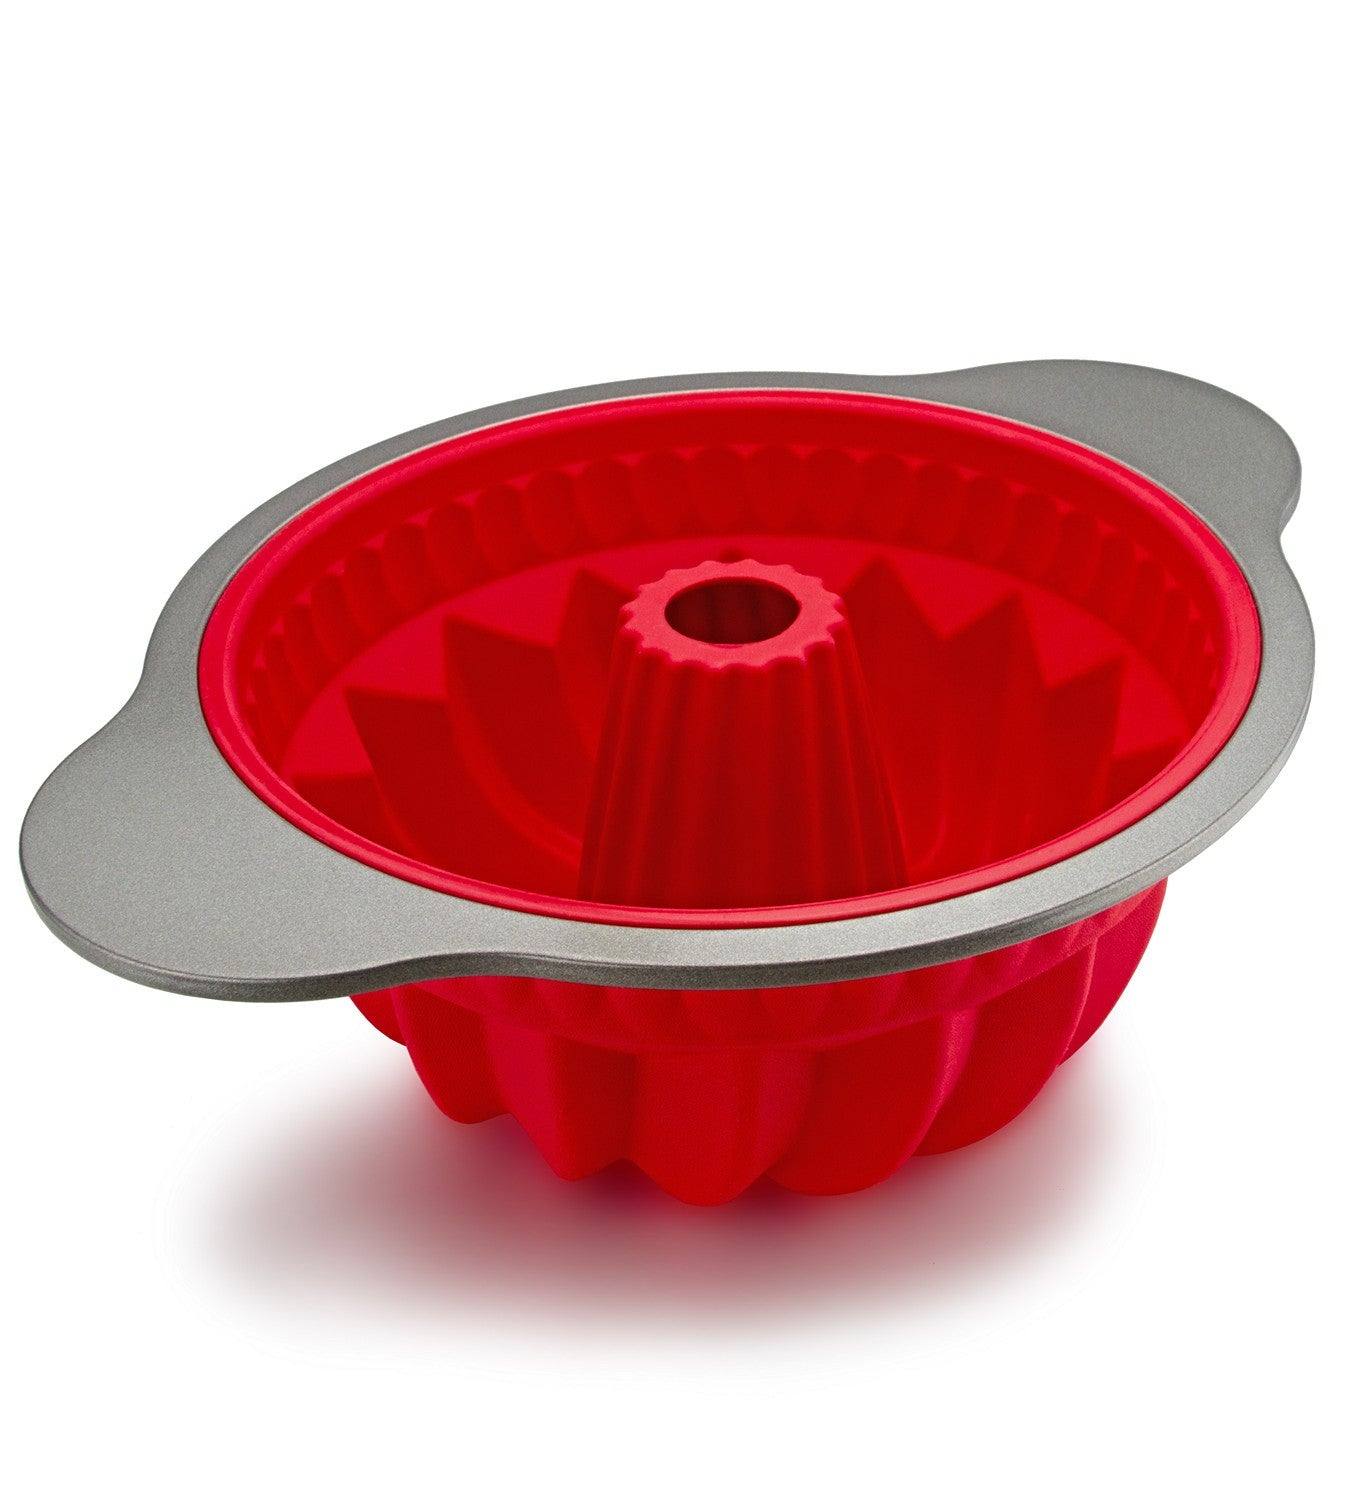 Premium Silicone Non-Stick Durable Bundt Pan